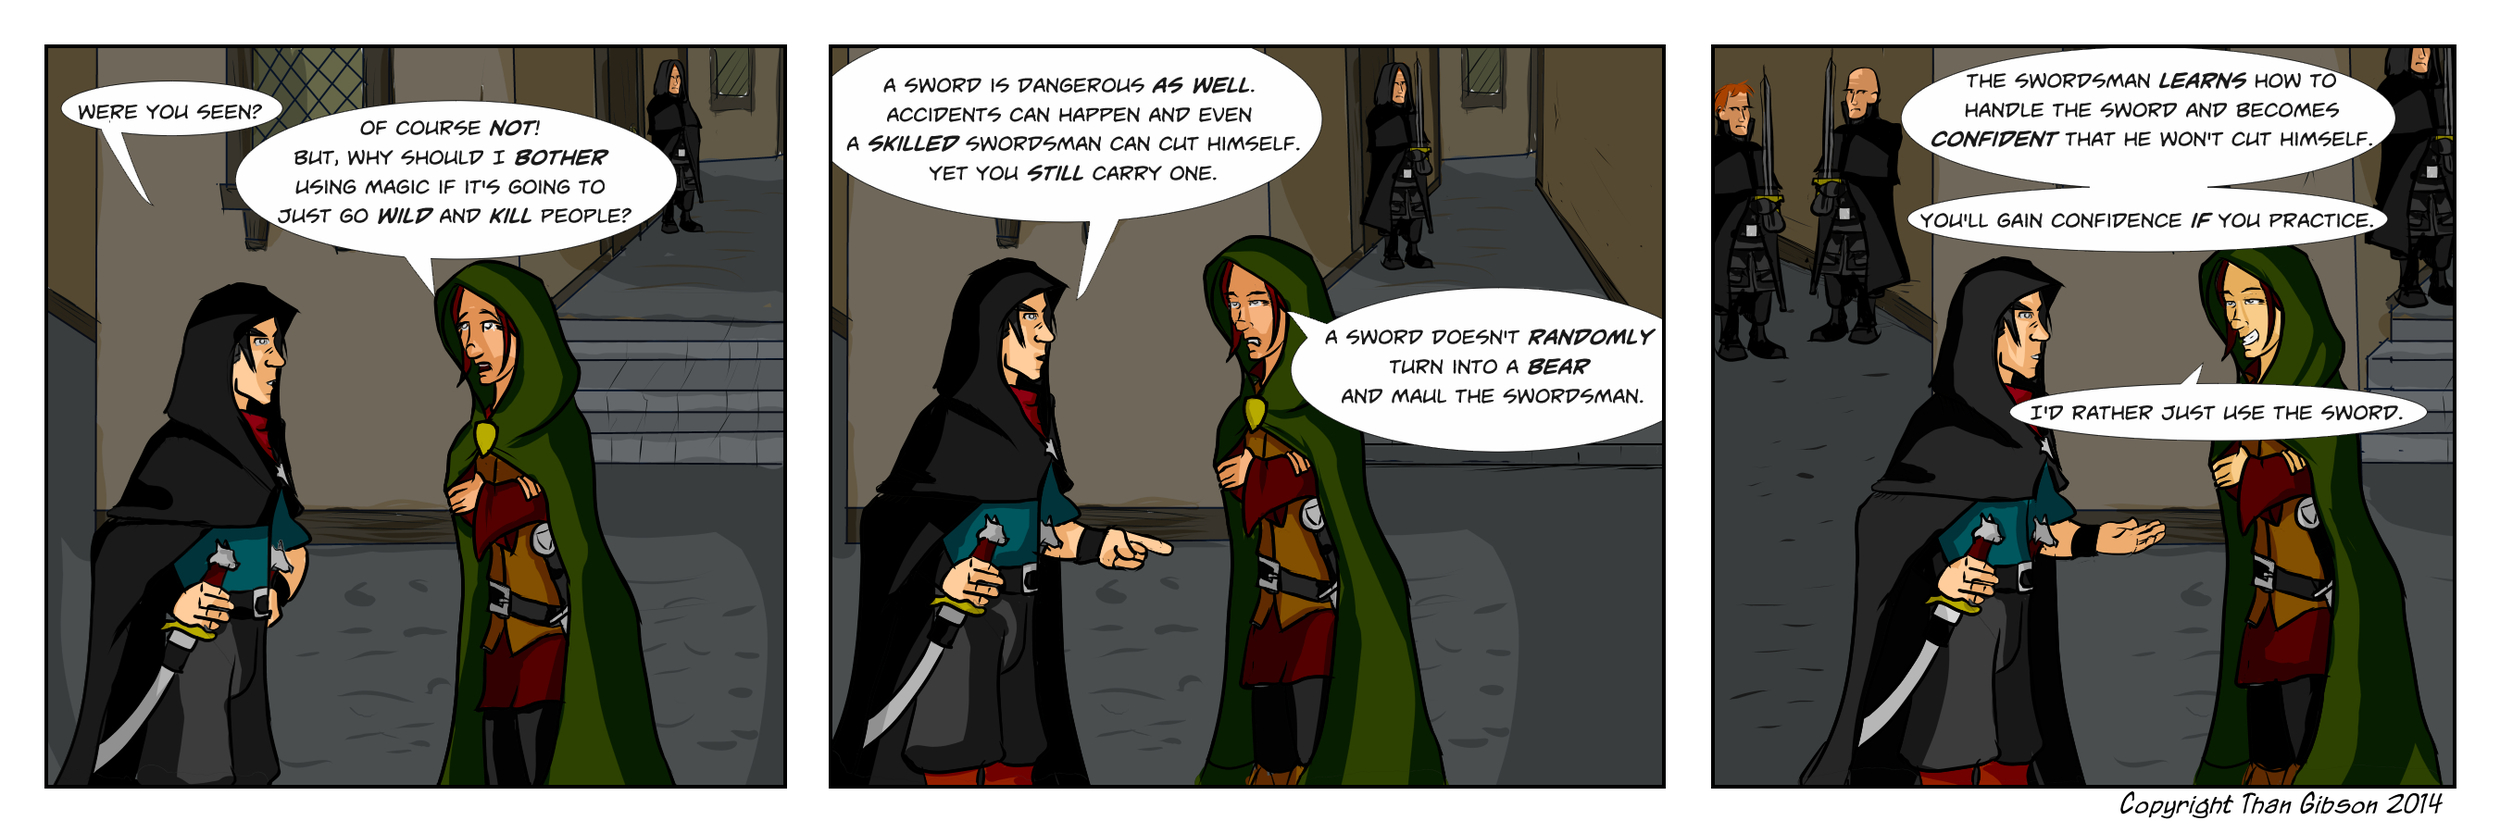 Strip 18 - Click the image for a larger view!